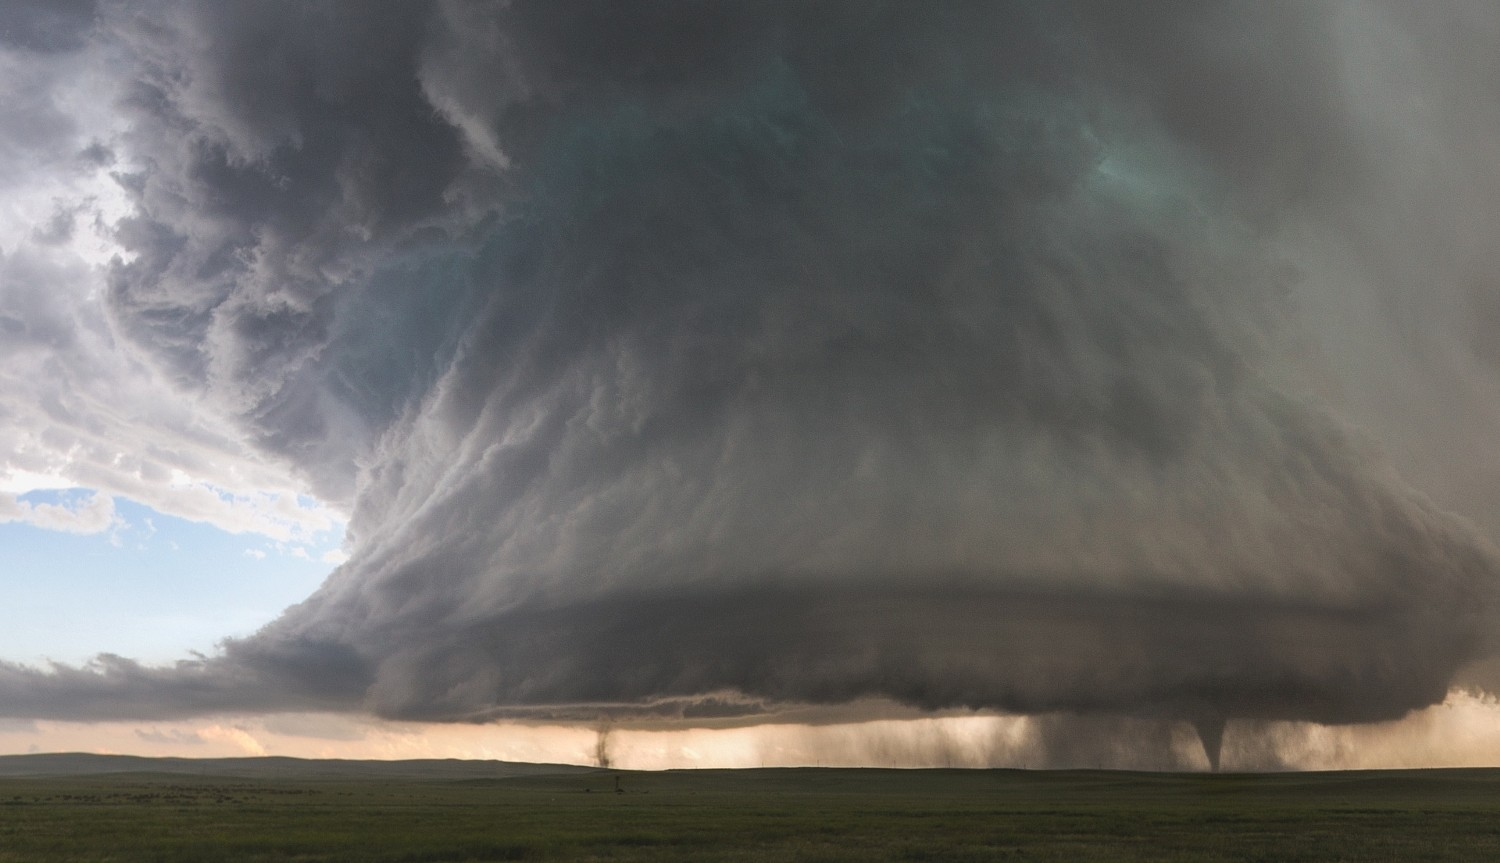 Storm Chaser Kelly DeLay Just Captured the Shot of a Lifetime